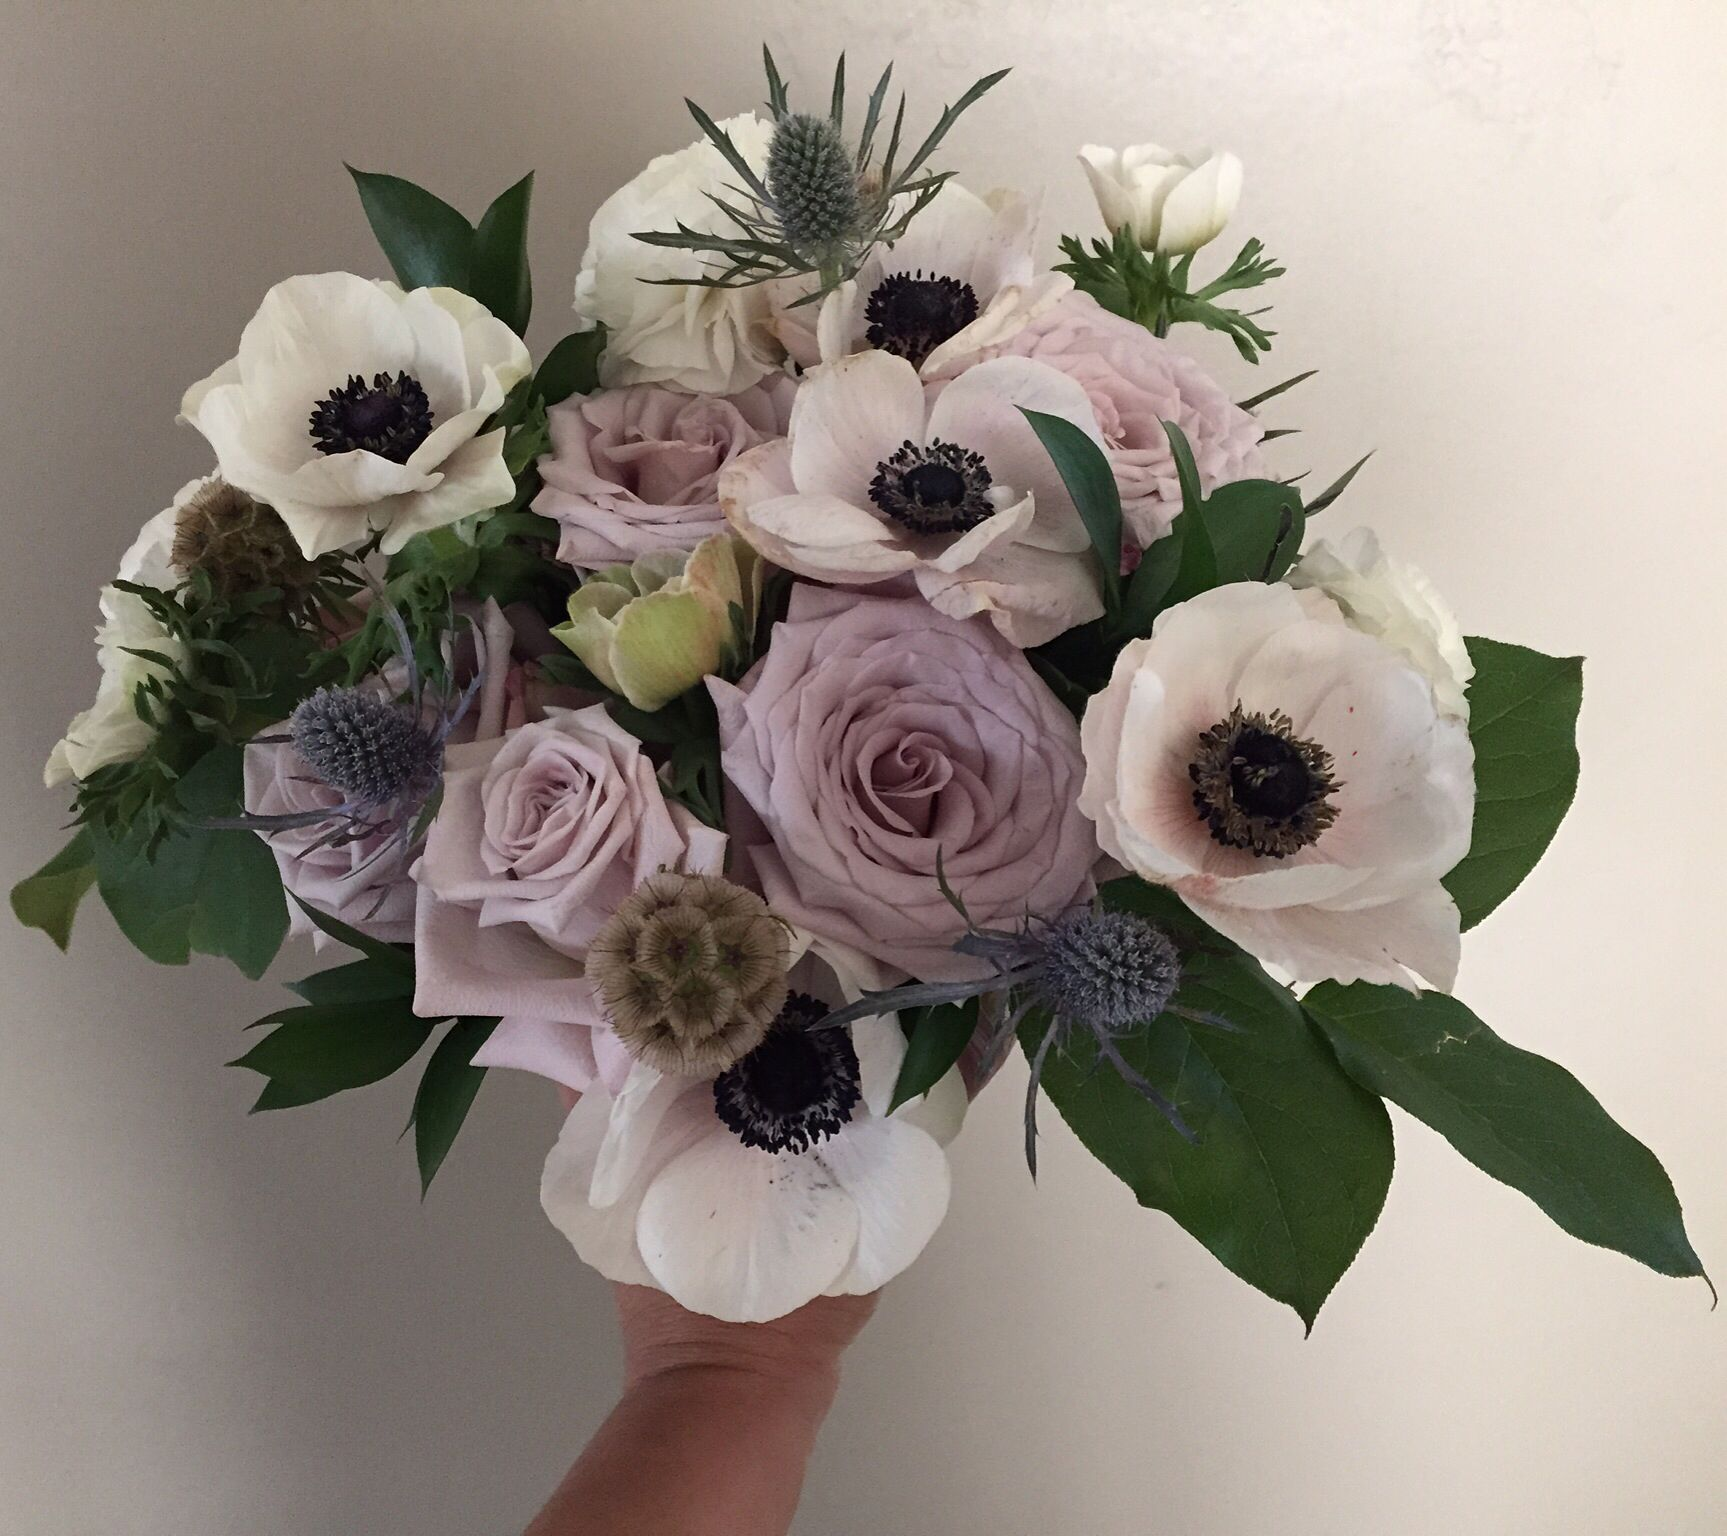 Anemones Menta Roses Sea Holly Scabiosa Pods Israeli Ruscus Flowers